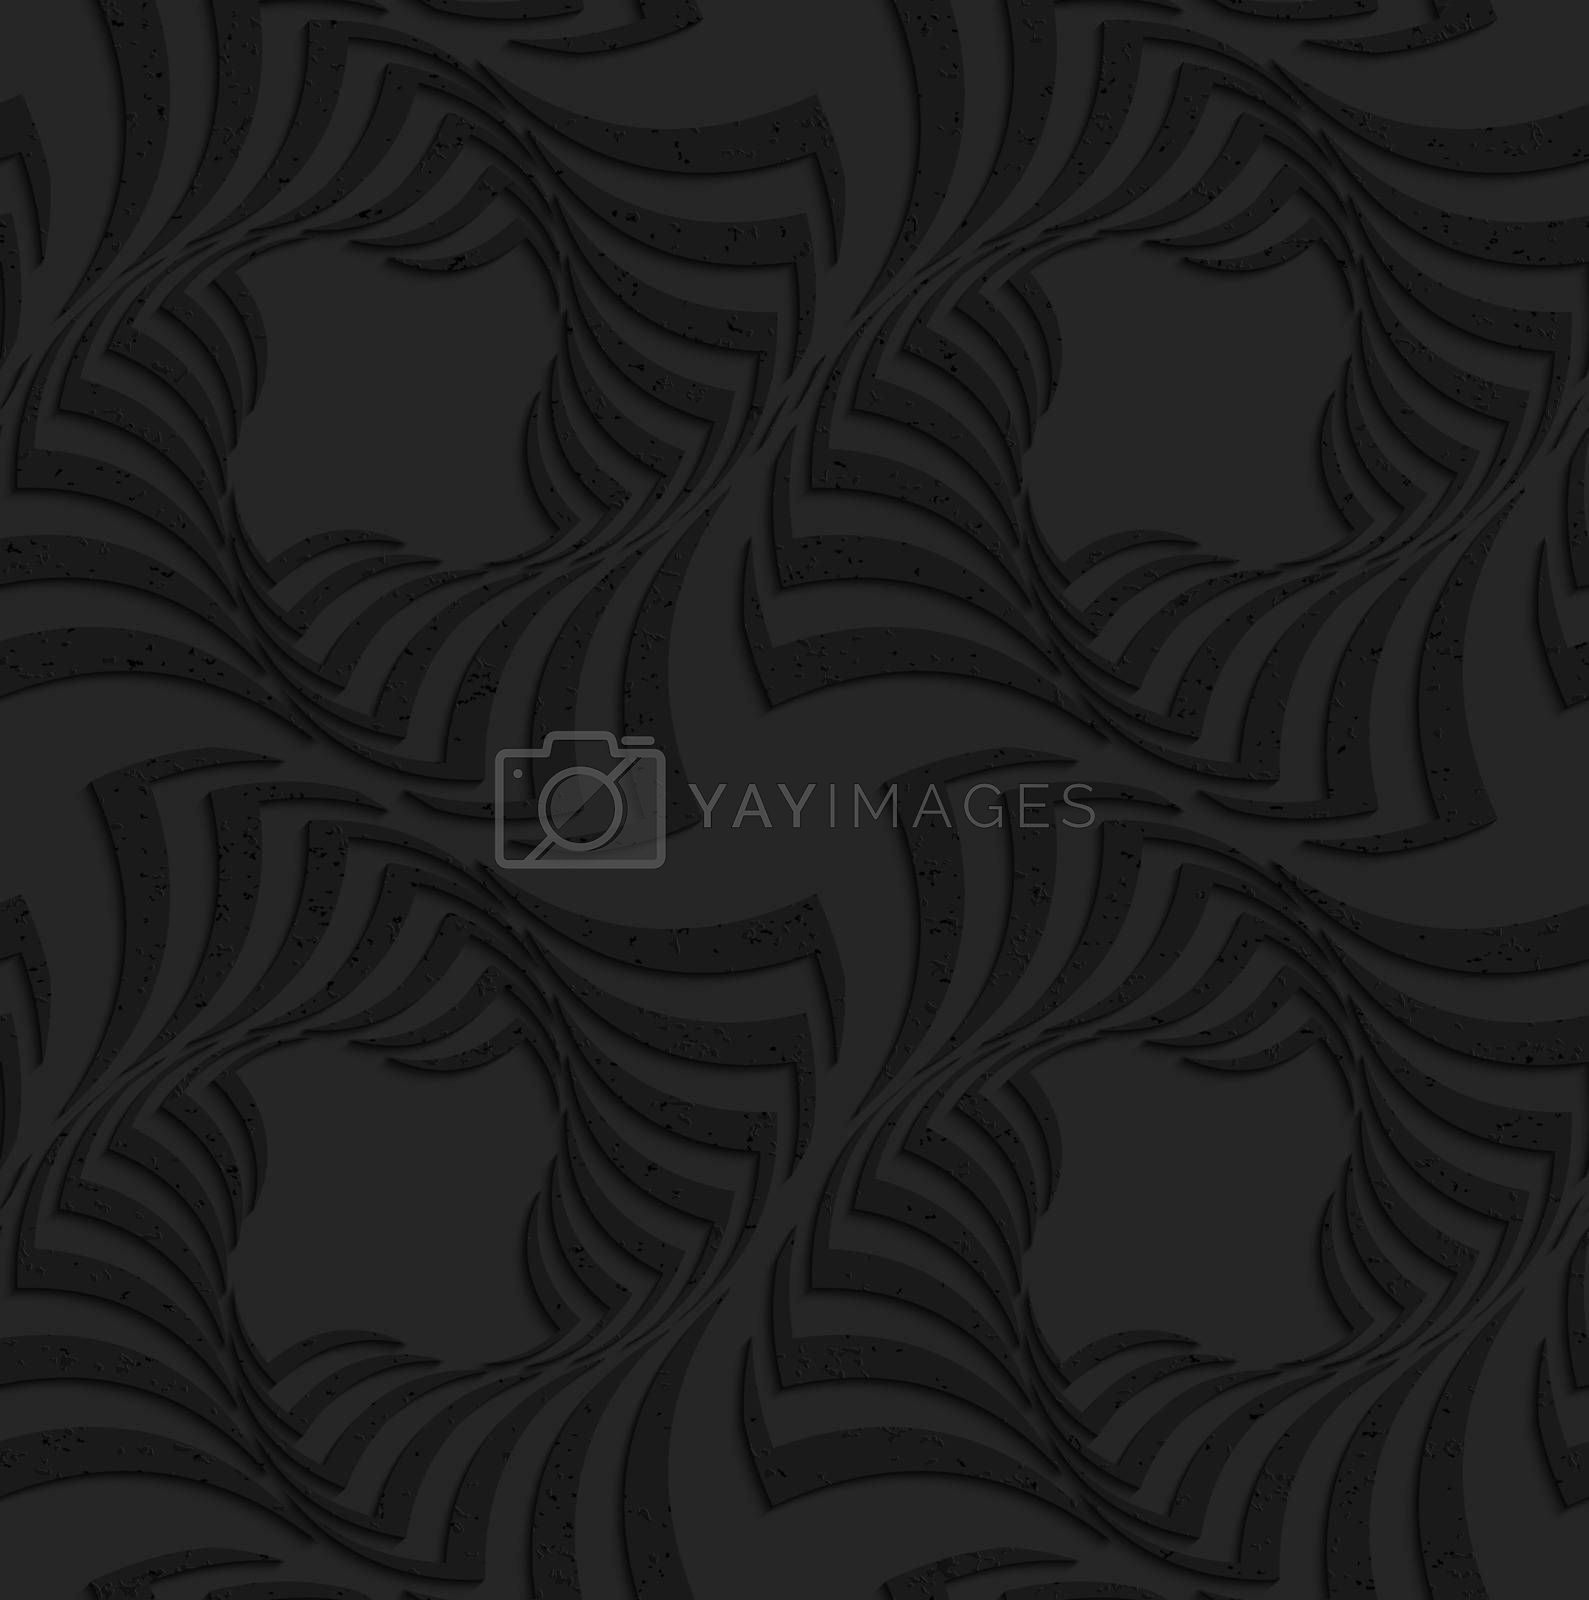 Textured black plastic twisted big squares by Zebra-Finch